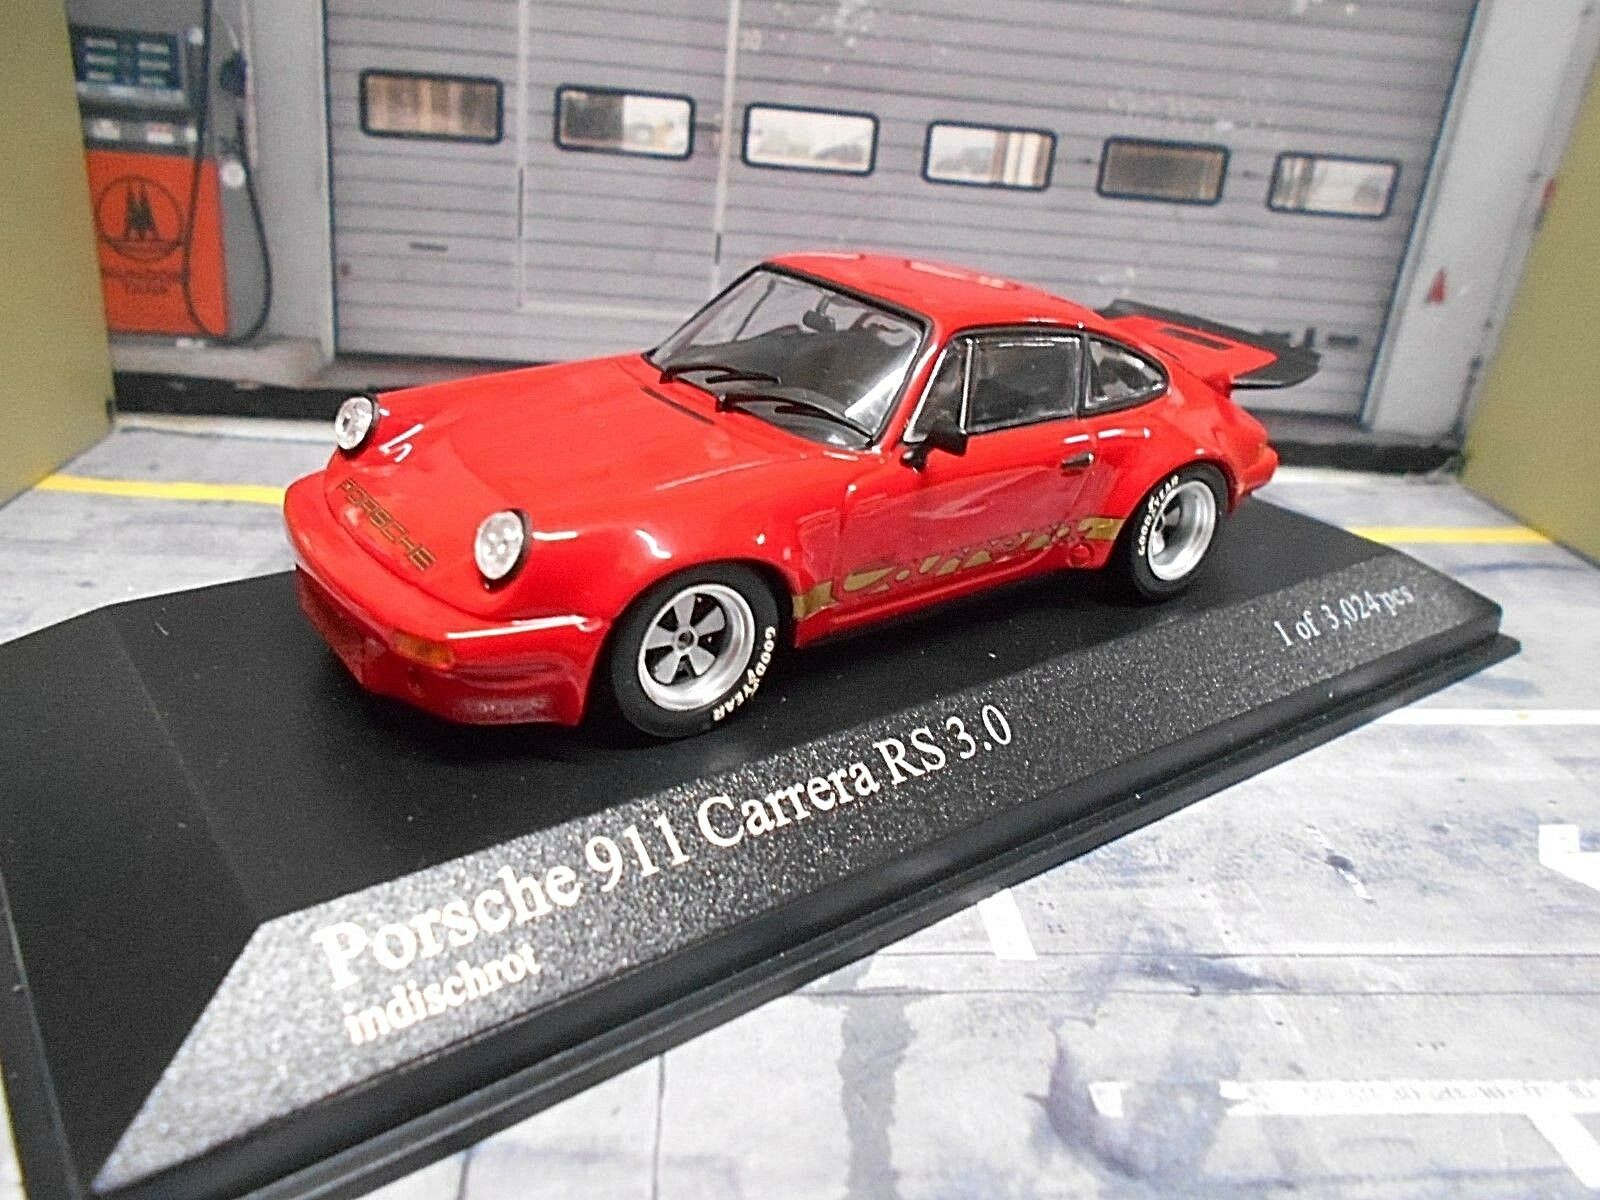 Porsche 911 Carrera RS 3.0 g modelo rosso rosso ready to Race transformación based pma 1 43